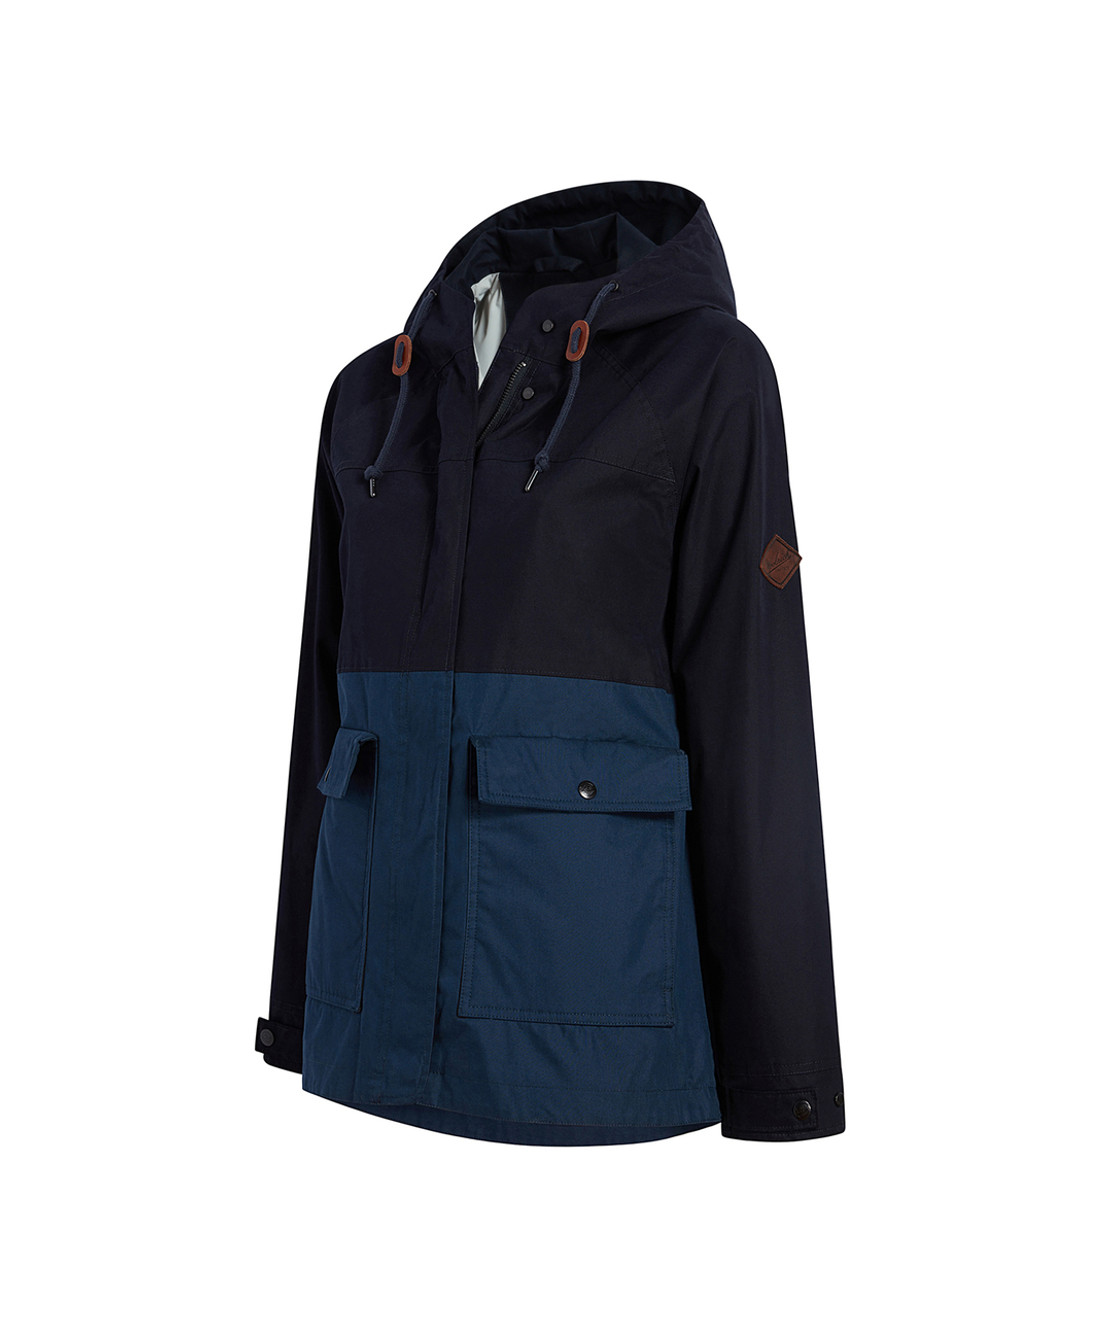 Women's Crestview Heritage Raincoat